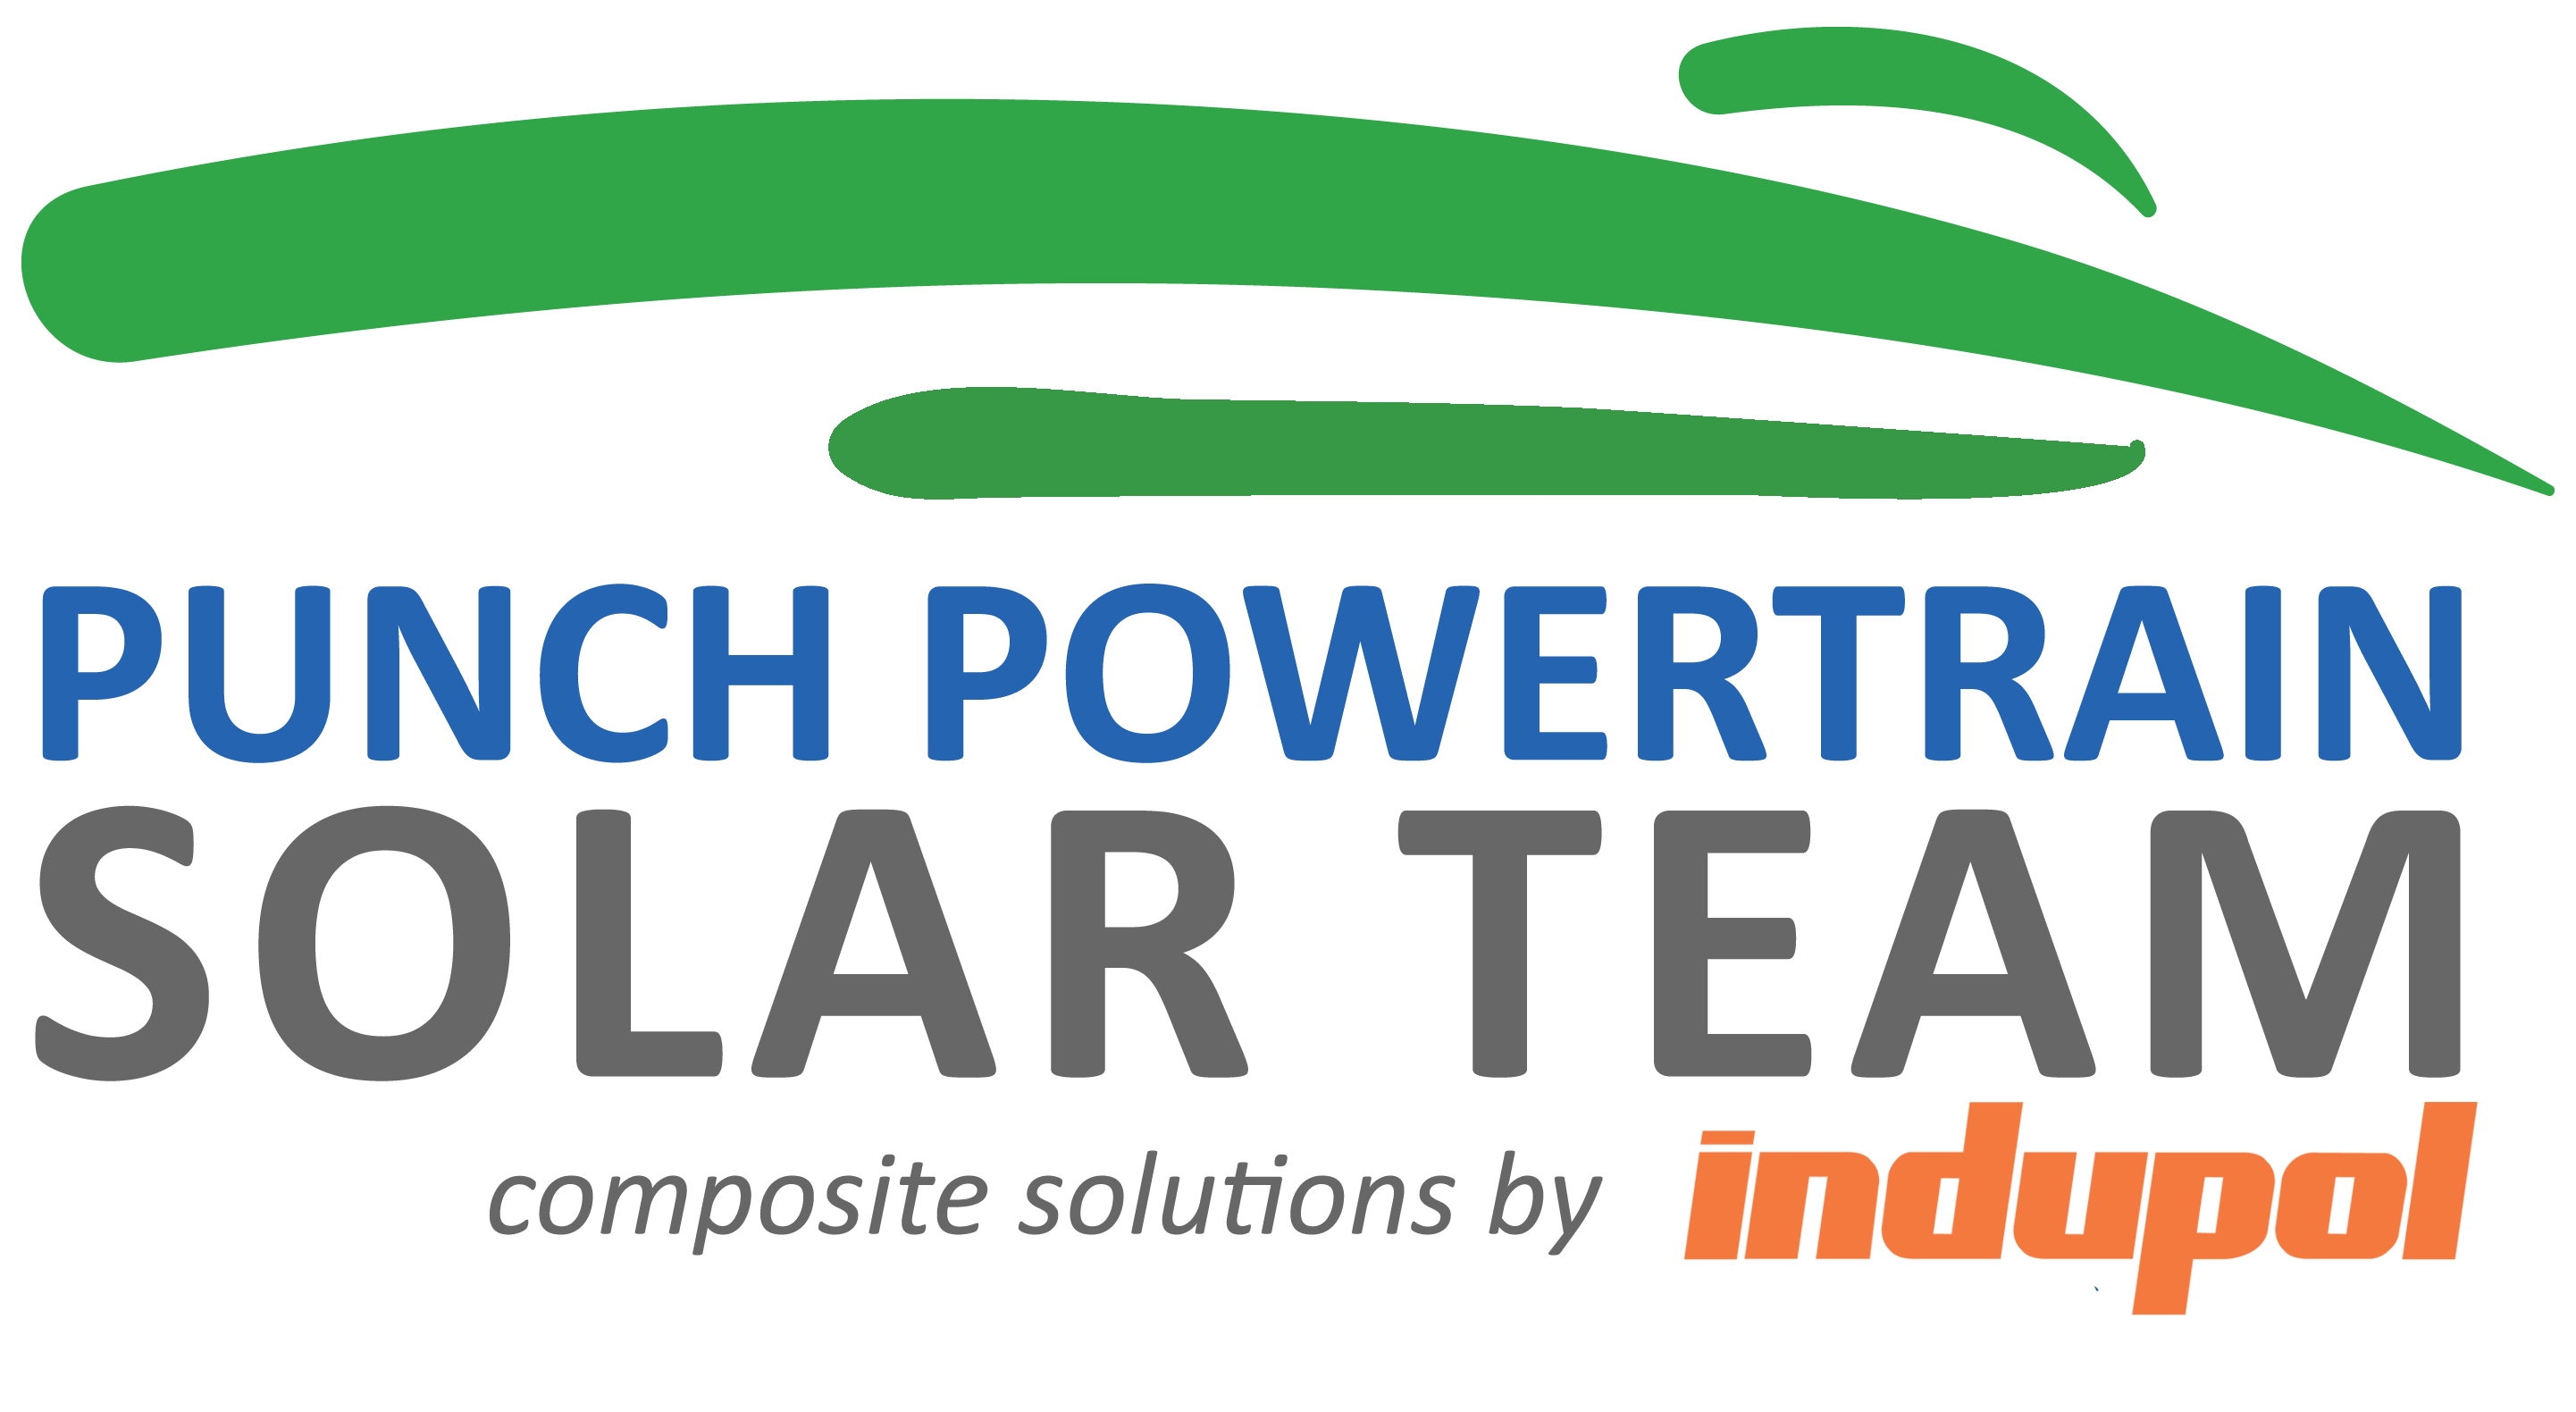 images/teams/Punch Powertrain Solar Team.png